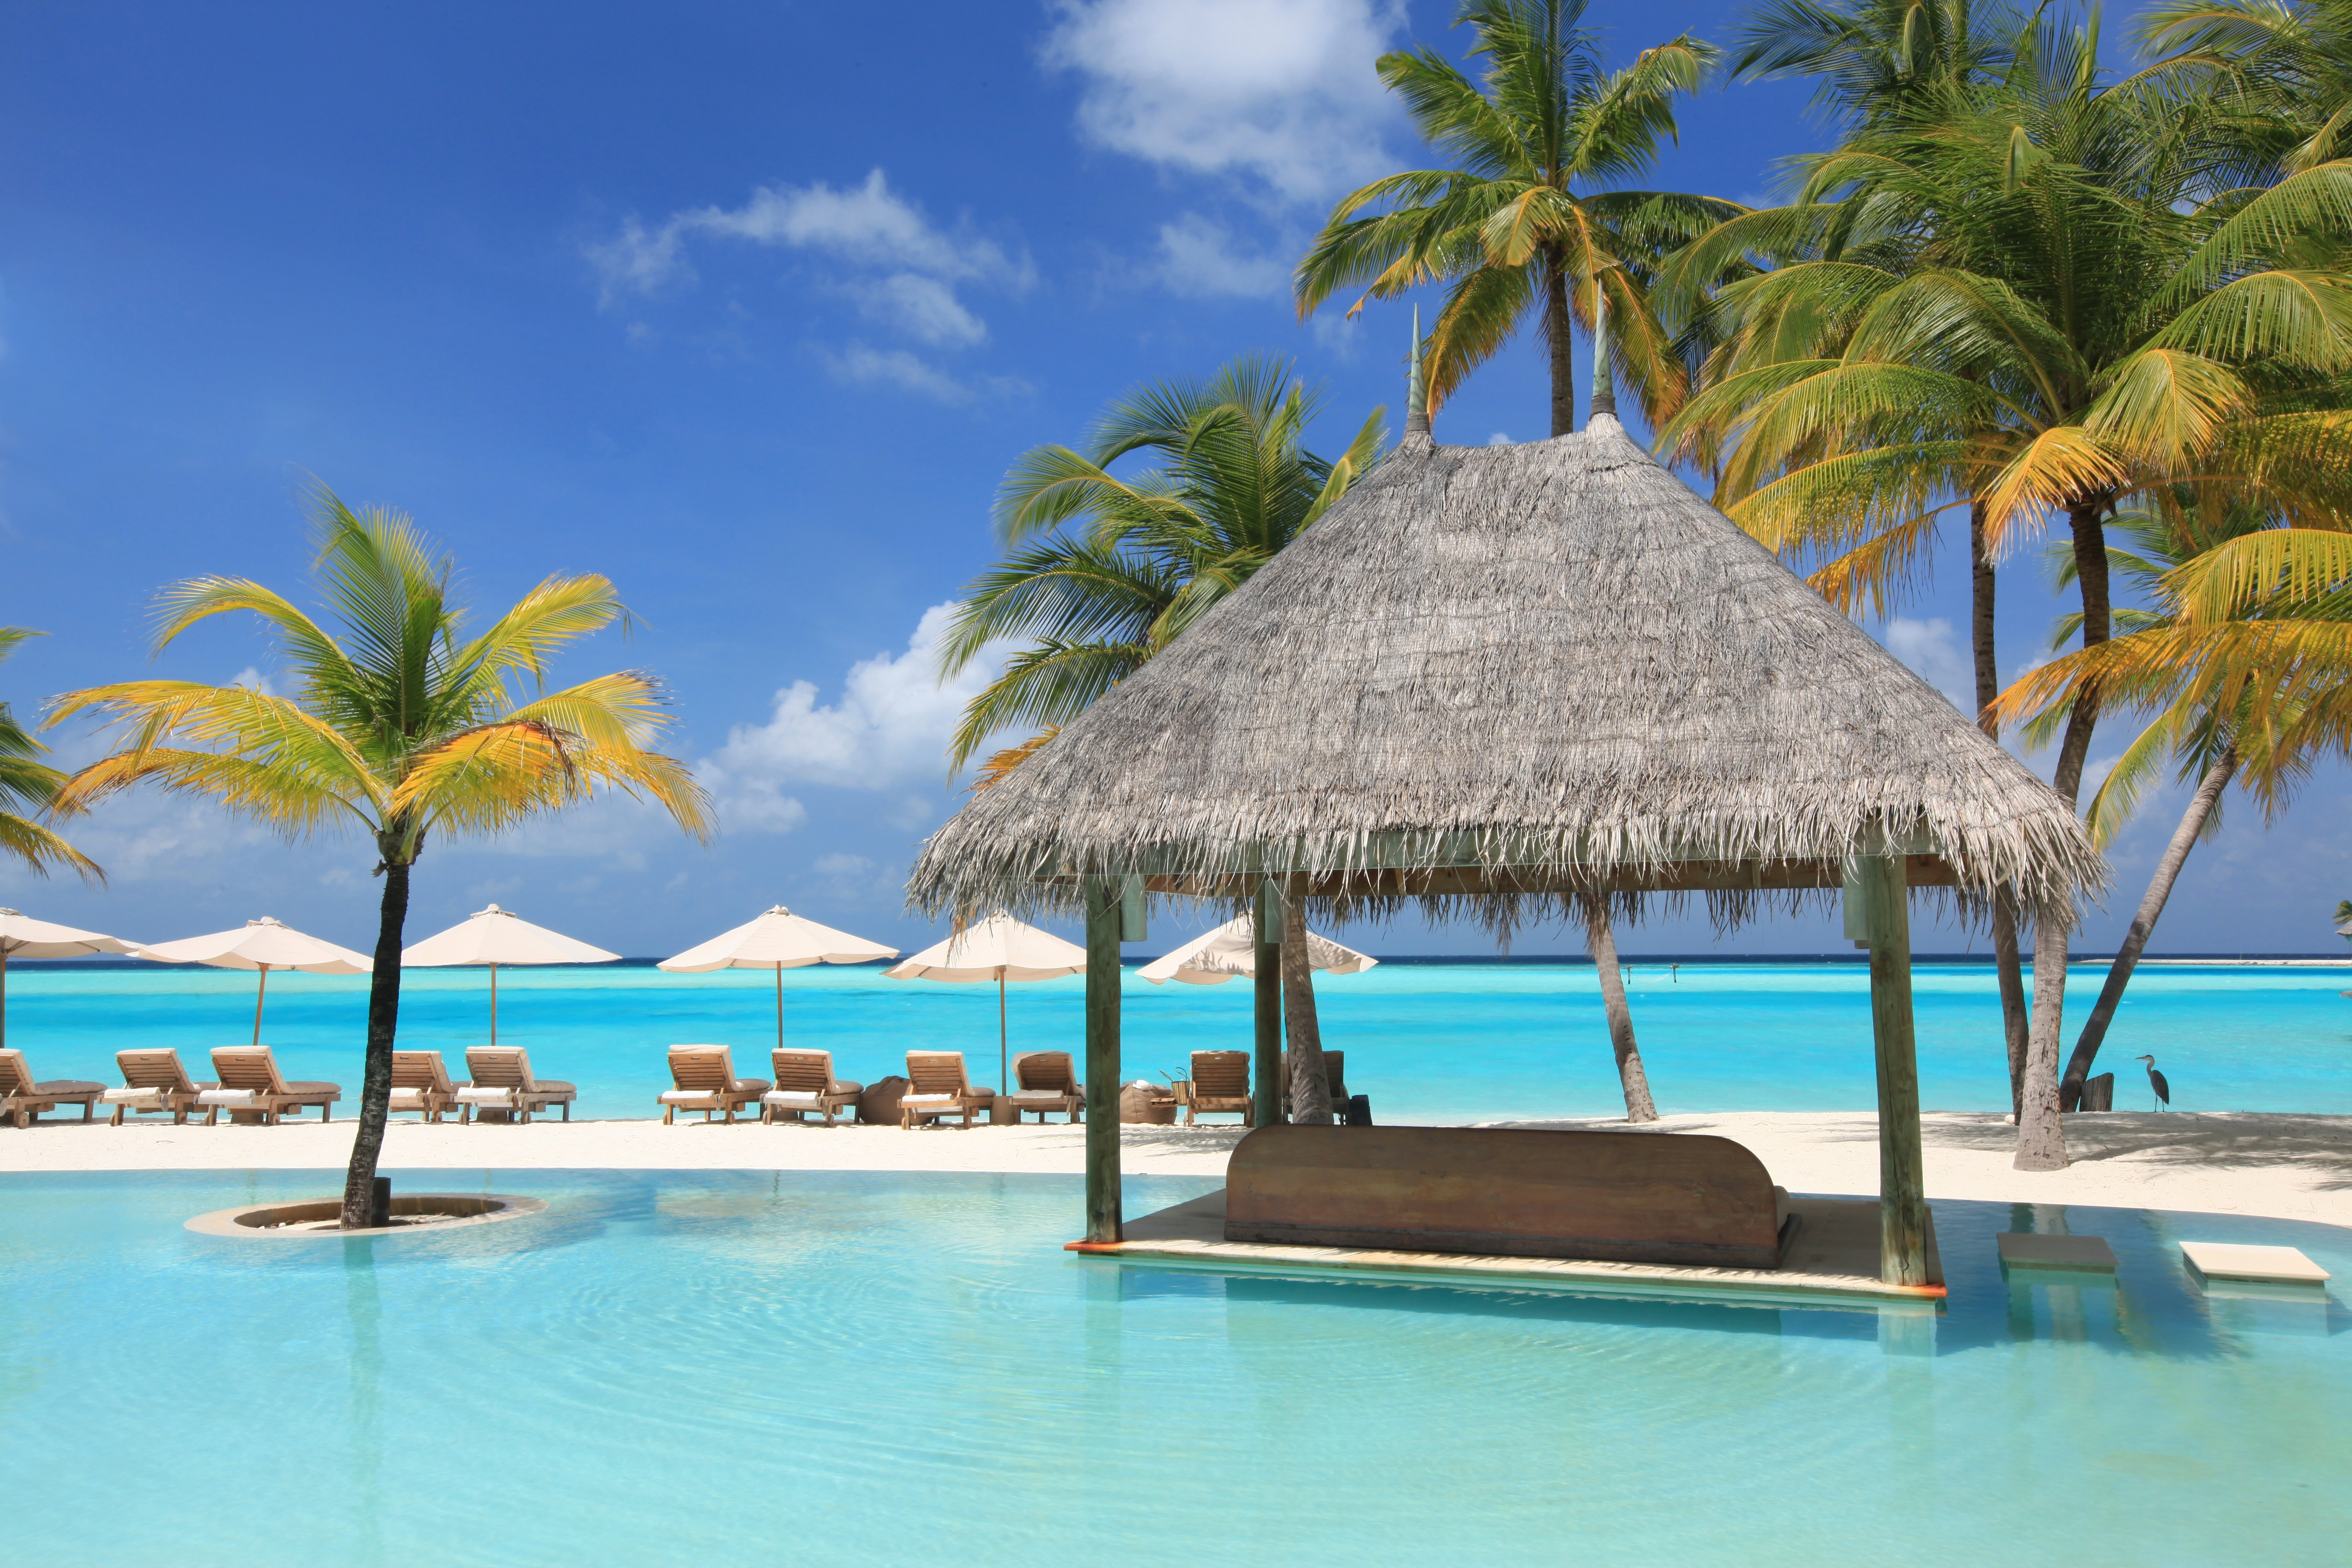 64035 download wallpaper Miscellanea, Miscellaneous, Relaxation, Rest, Sun Loungers, Beds, Pool, Palms screensavers and pictures for free